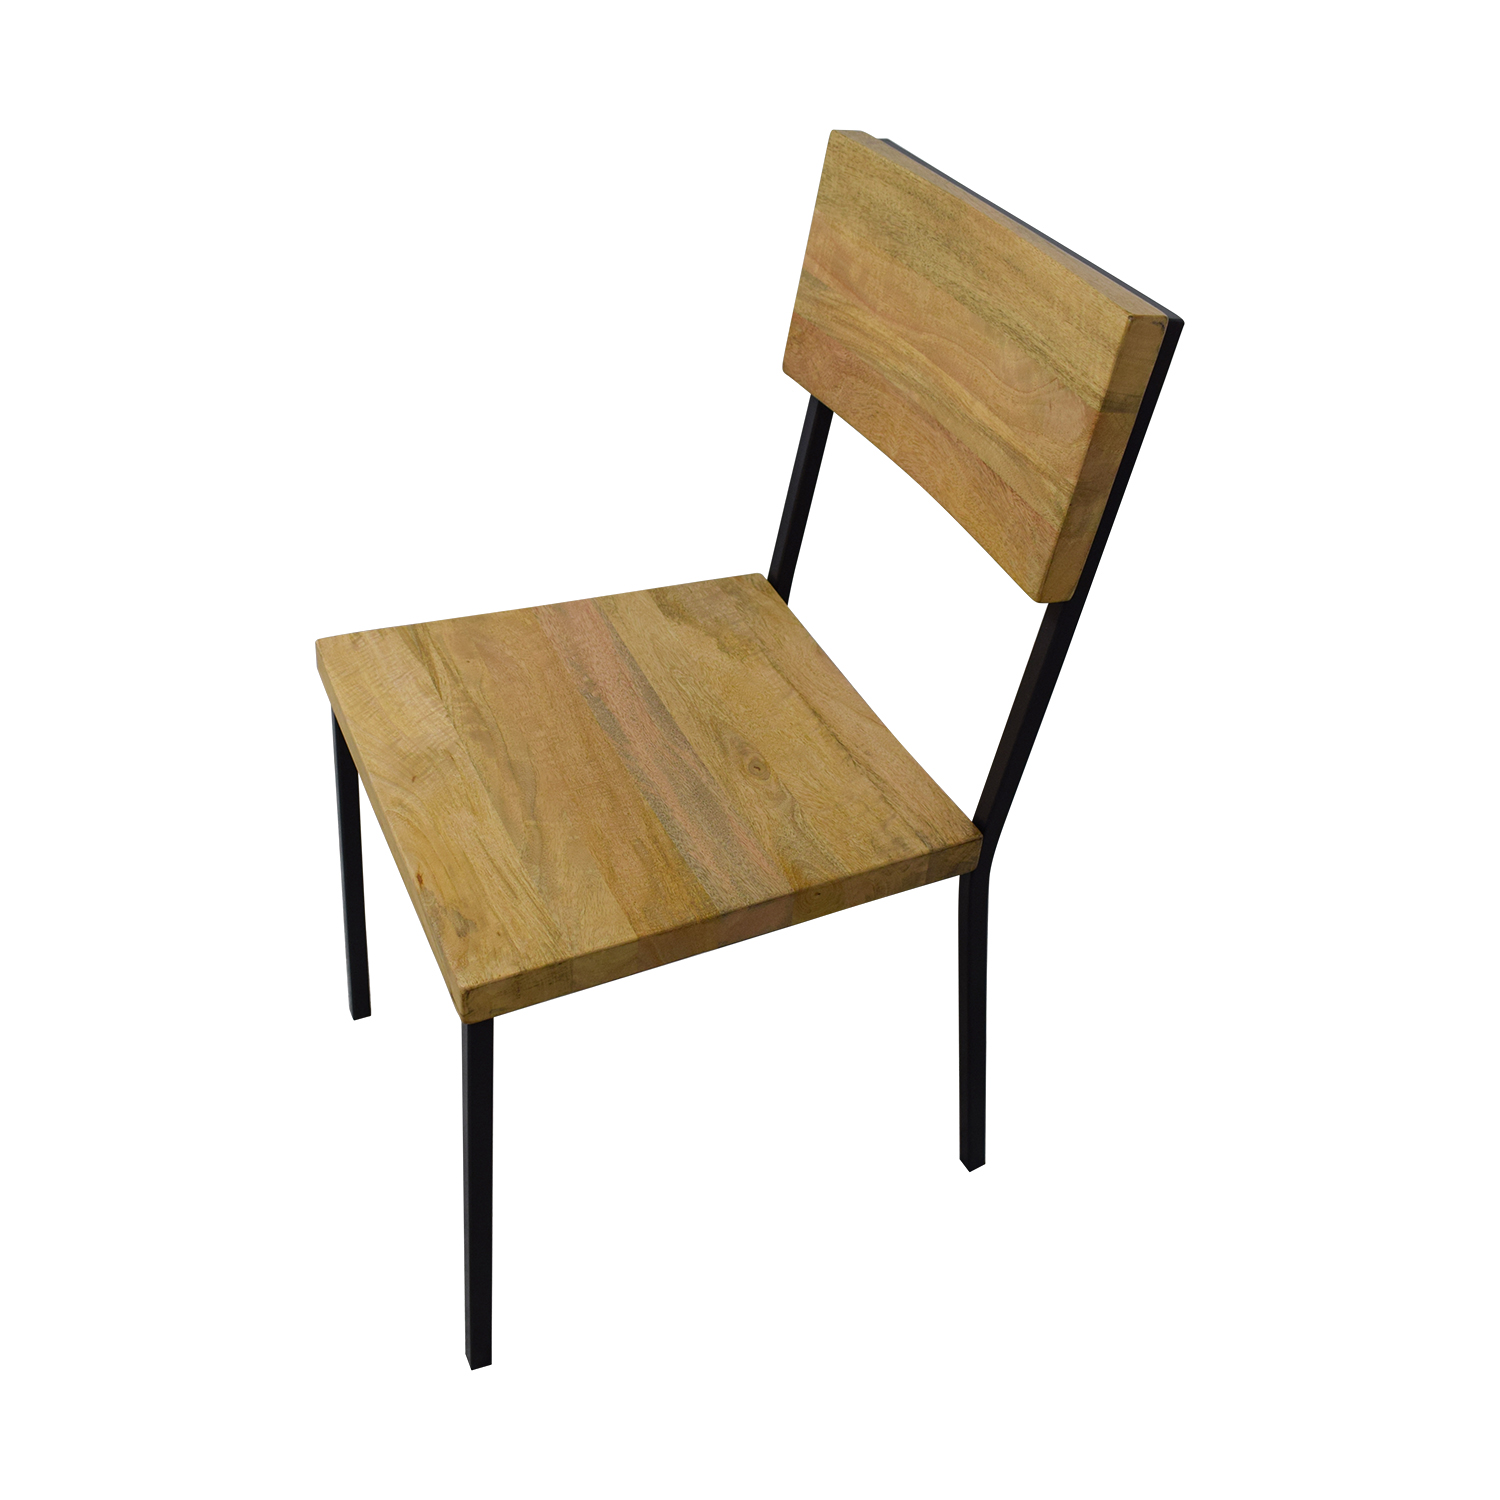 59 Off West Elm West Elm Rustic Dining Chairs Chairs